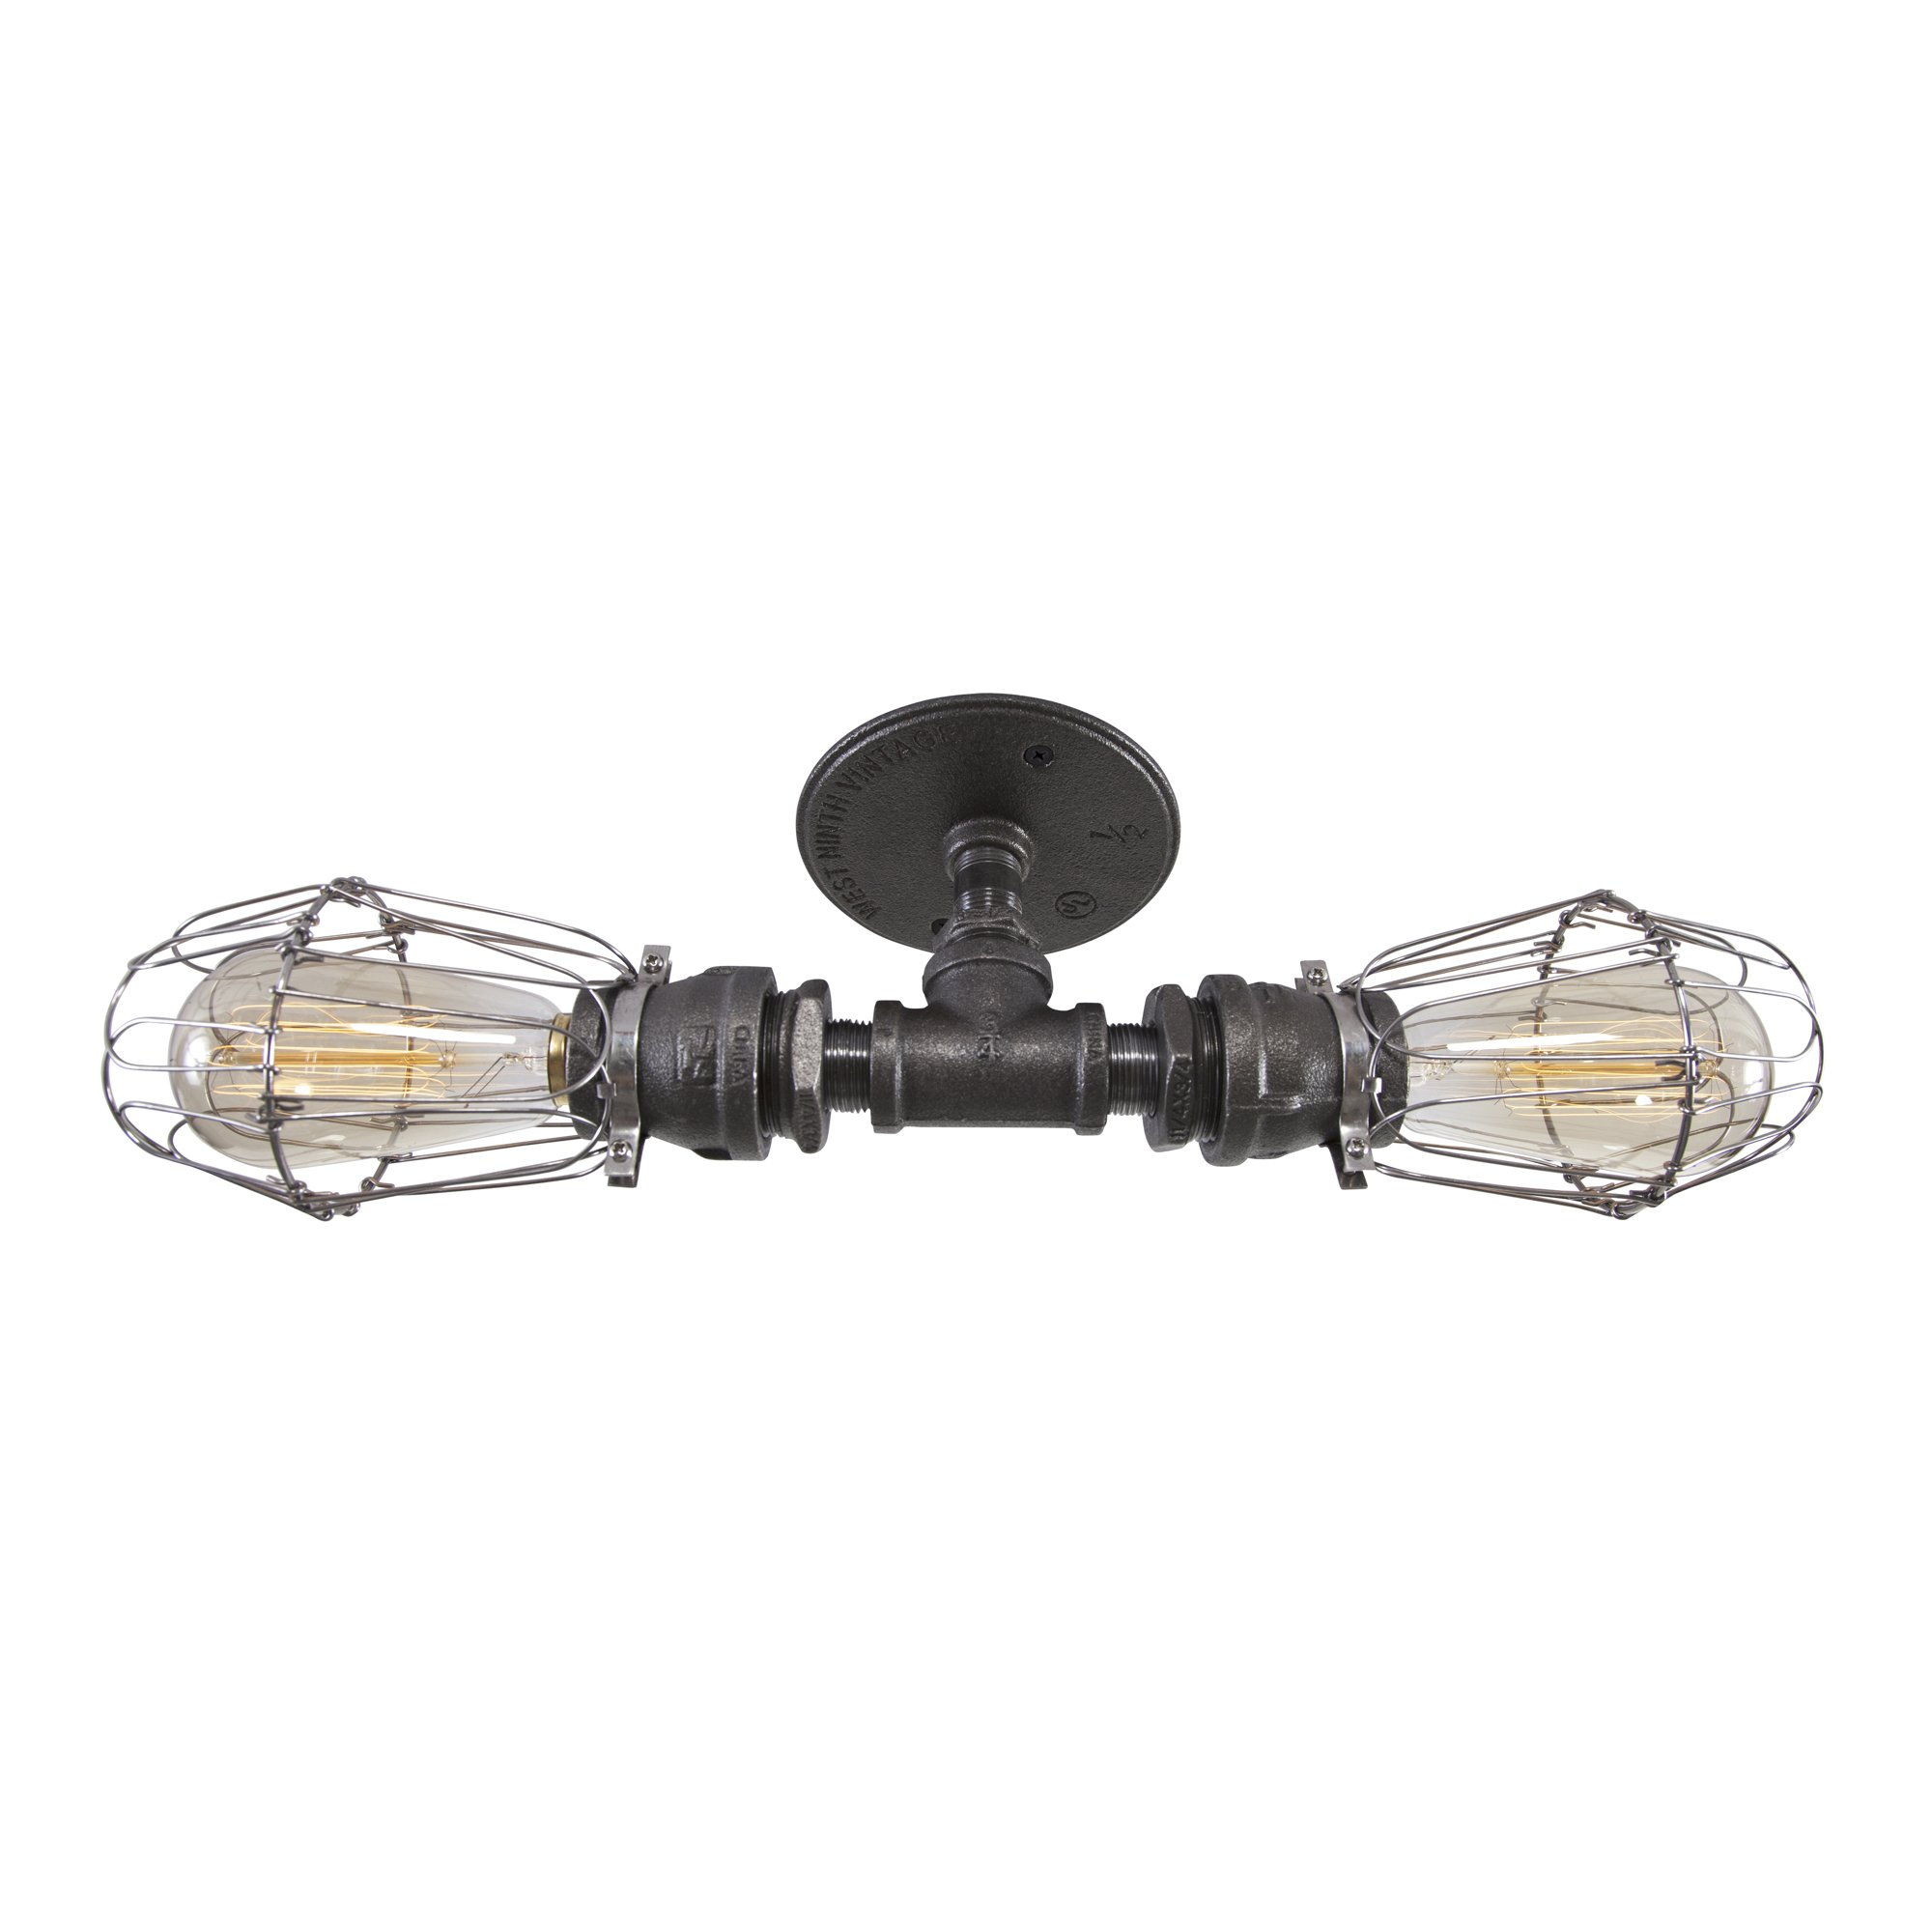 West Ninth Vintage Double Industrial Iron Pipe Ceiling Light